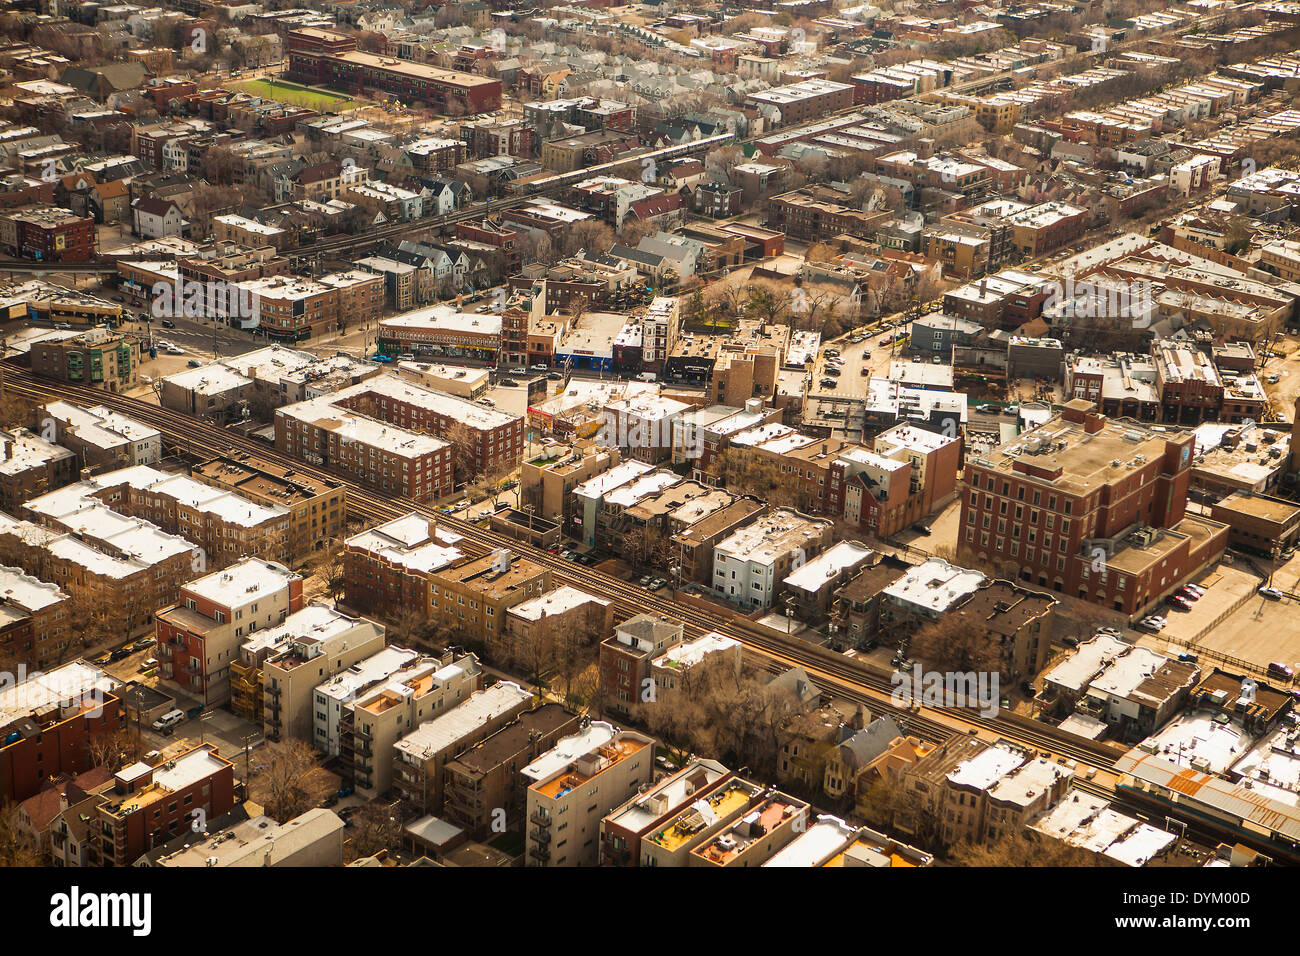 aerial view, suburbs of Chicago, Illinois - Stock Image